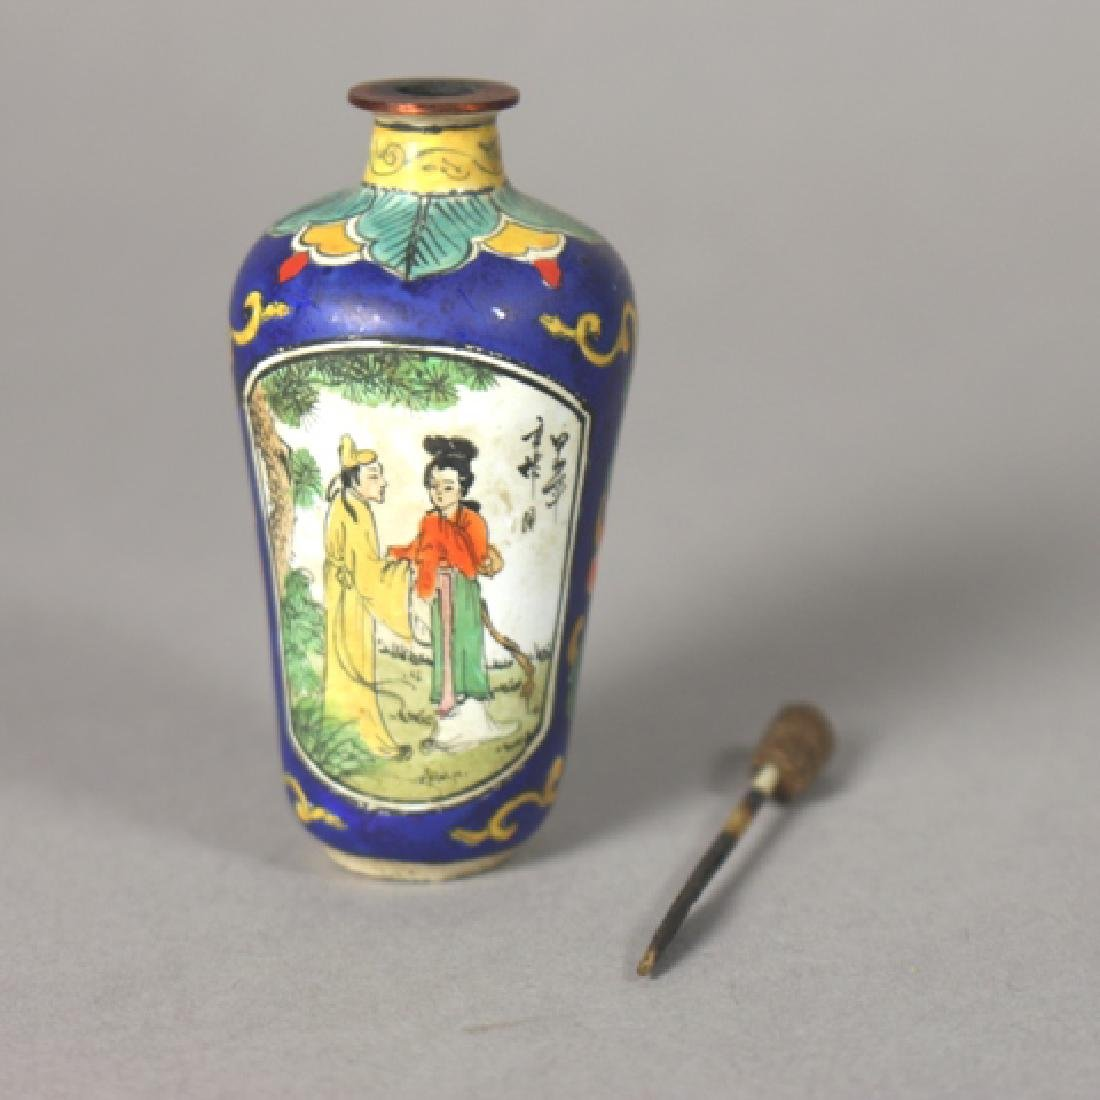 19th Century Chinese Enamel on Copper Snuff Bottle